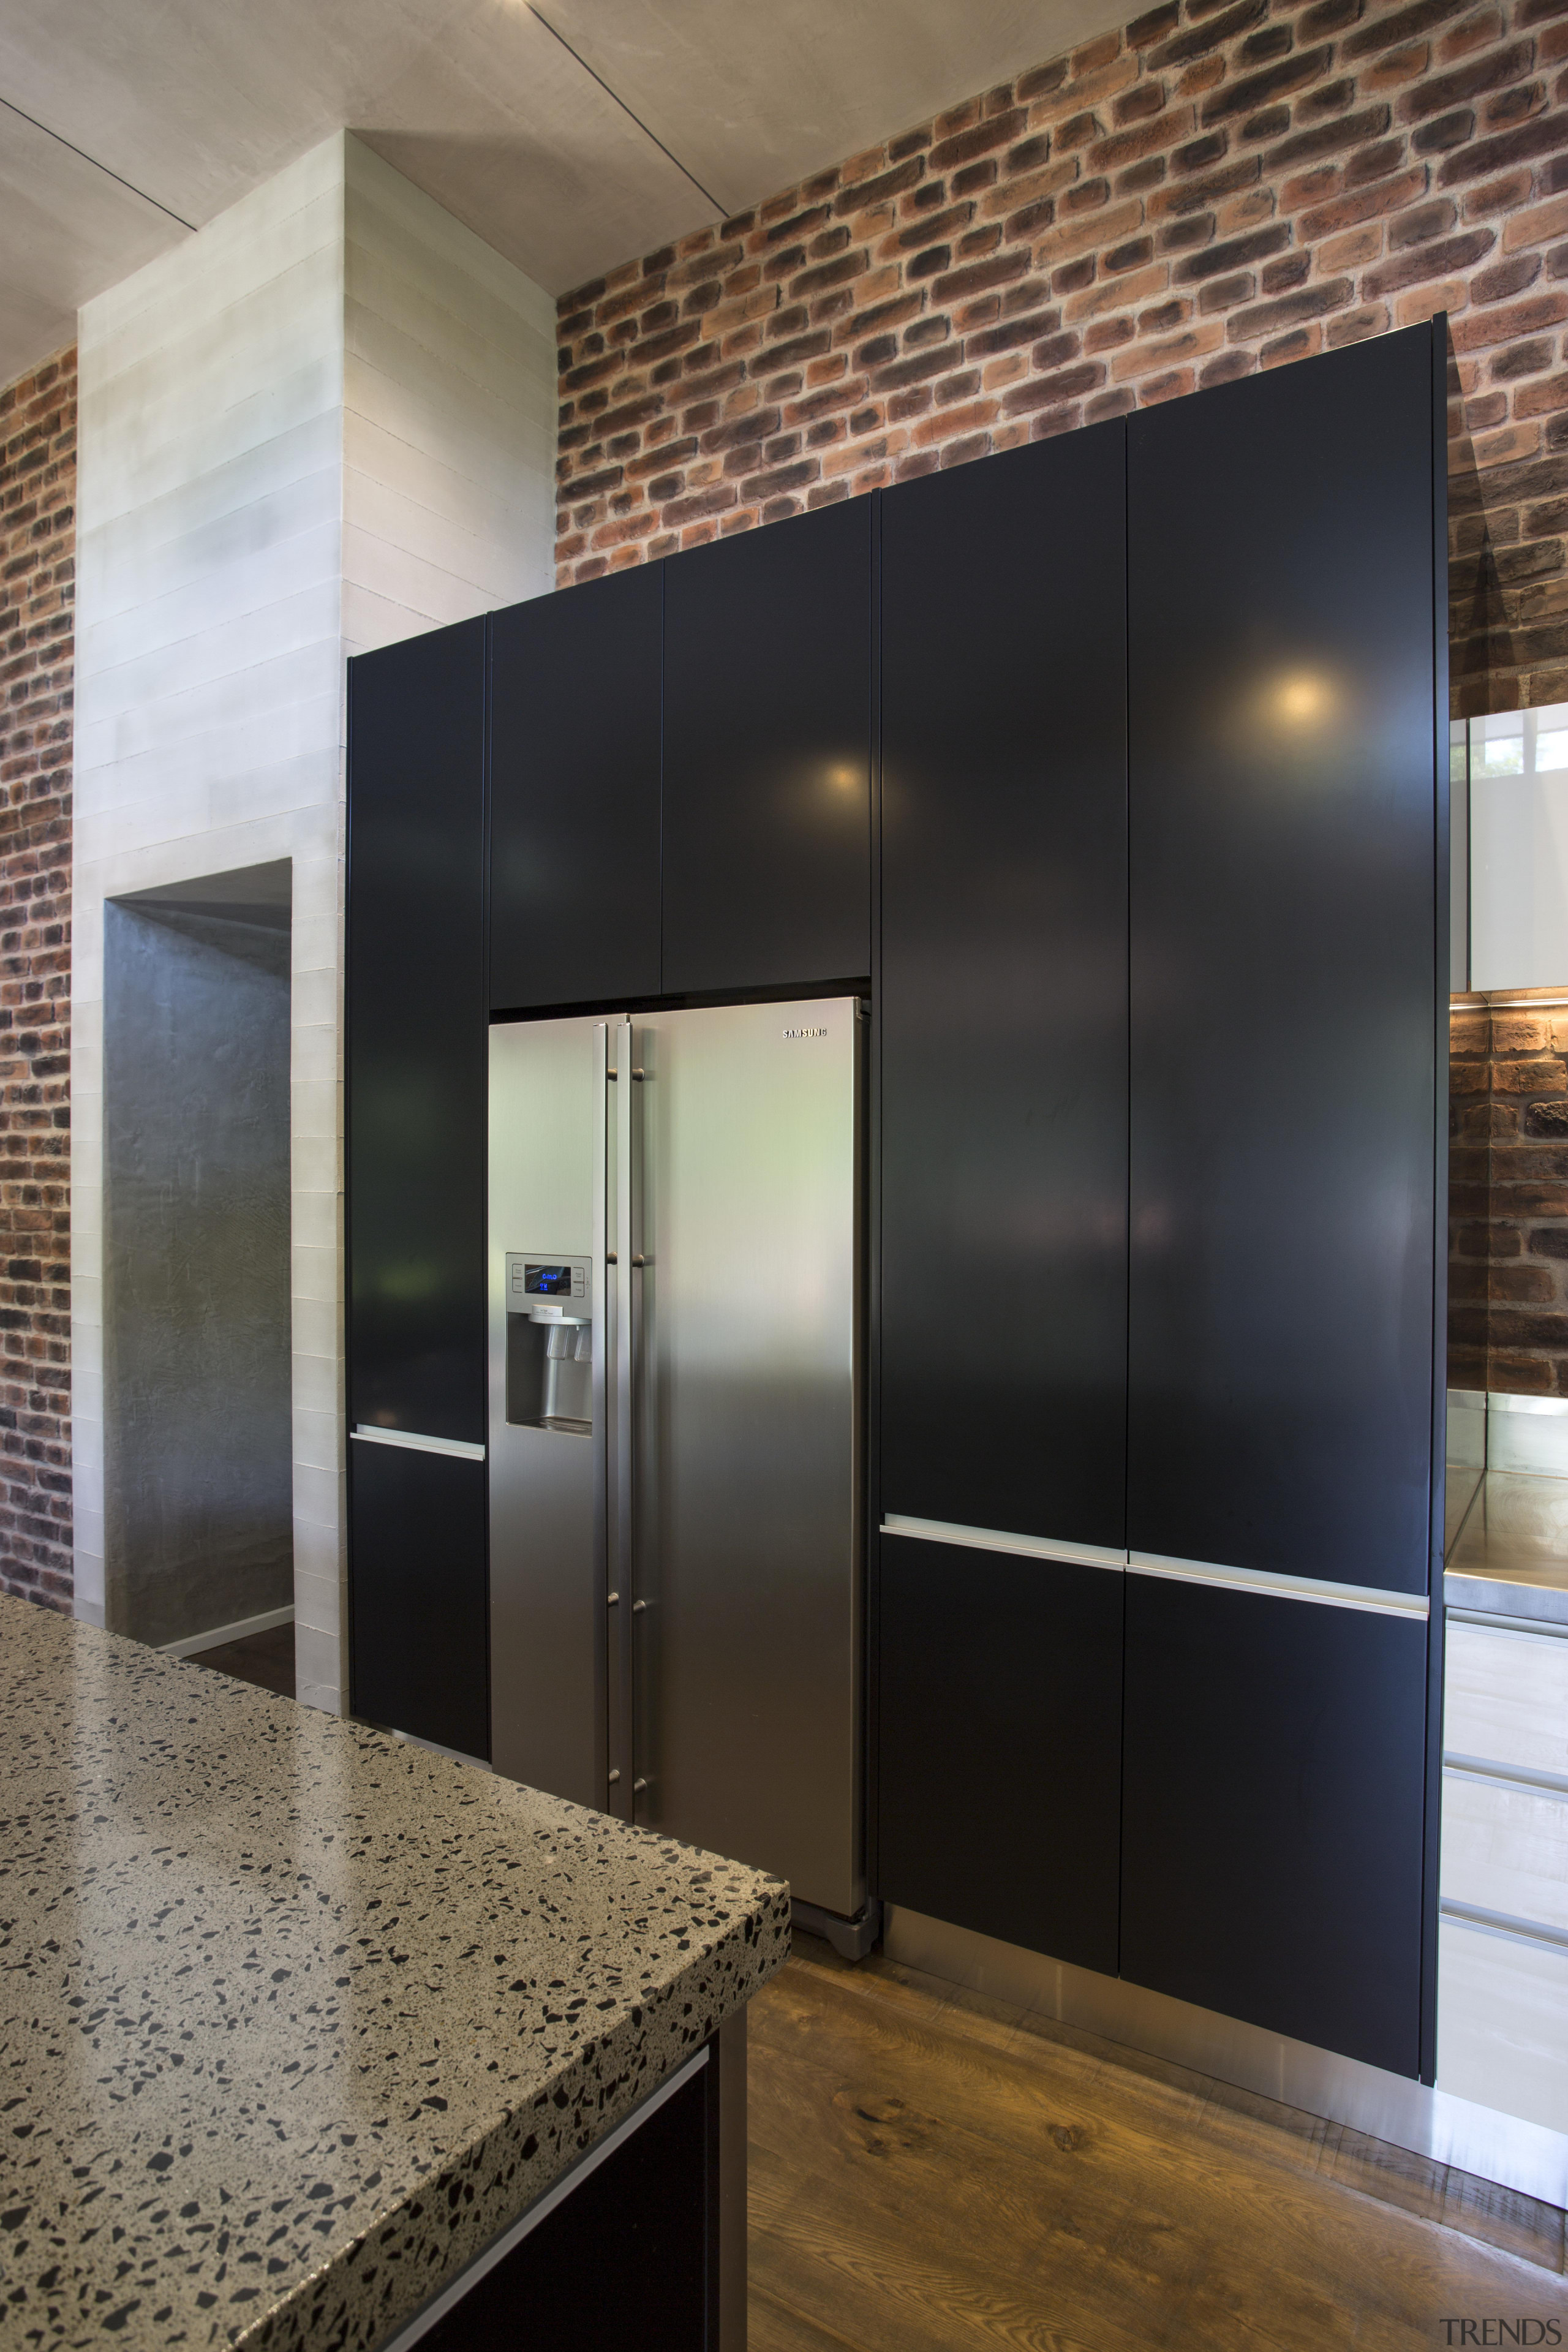 This wall of kitchen cabinetry includes a Hafele architecture, cabinetry, ceiling, countertop, floor, flooring, interior design, wall, wood flooring, black